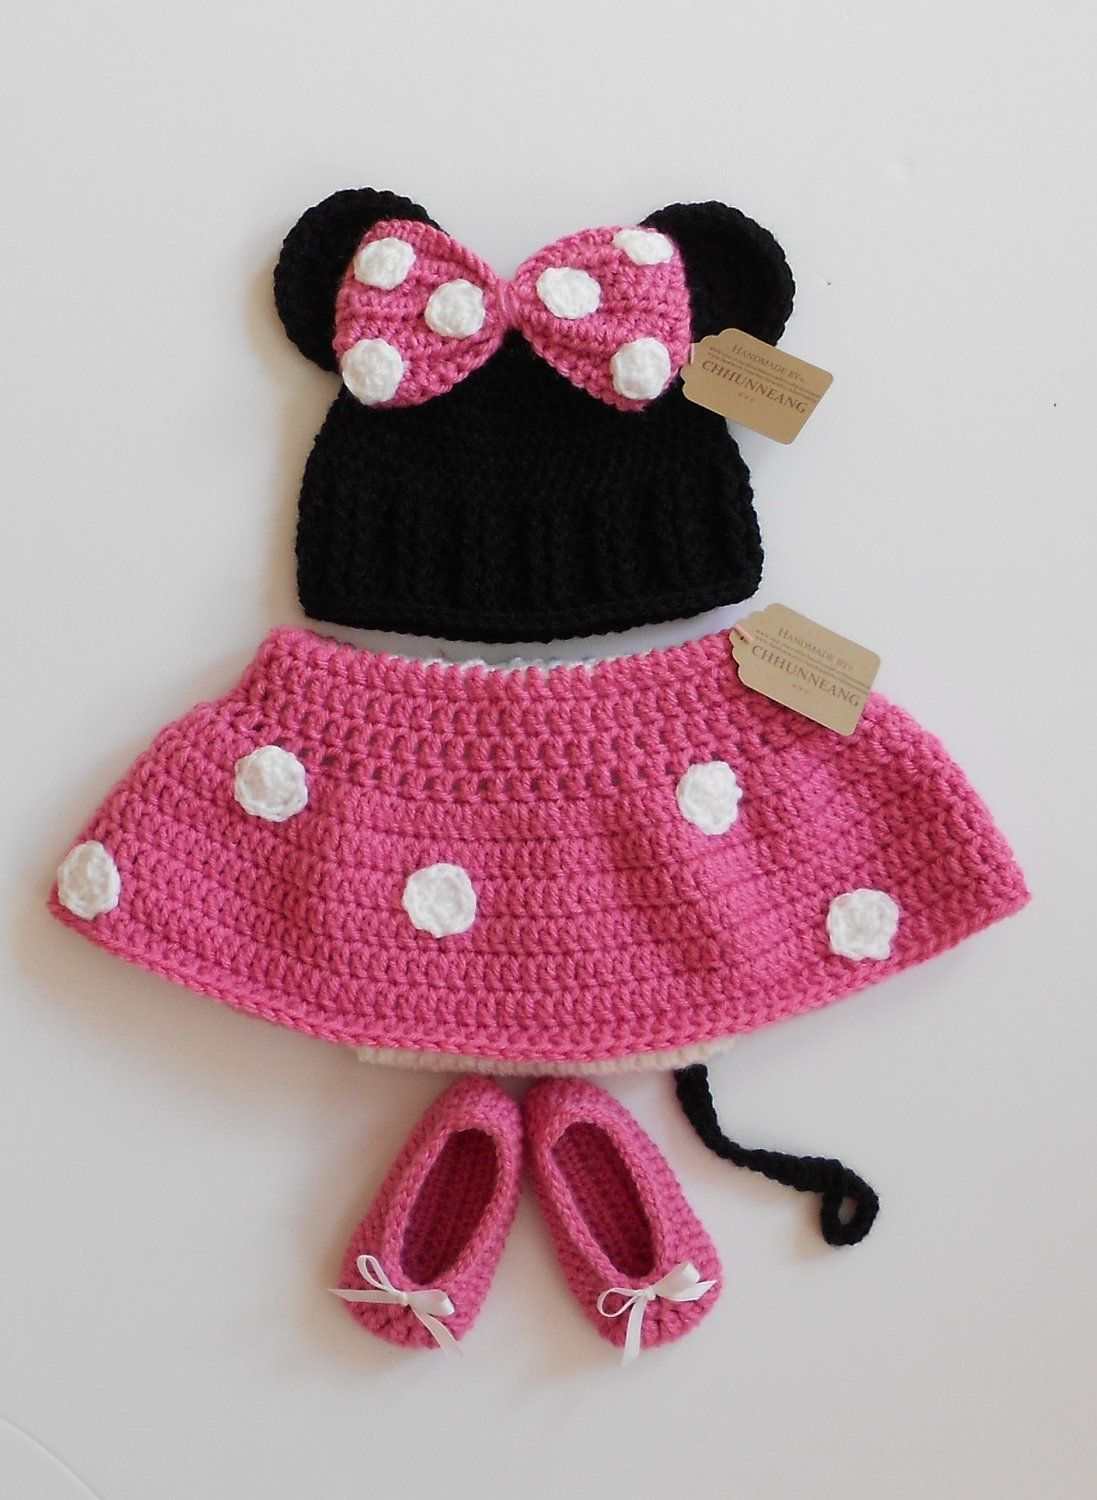 Baby minnie mouse hat diaper and shoes set 4995 via etsy baby minnie mouse hat diaper and shoes set 4995 via etsy bankloansurffo Choice Image